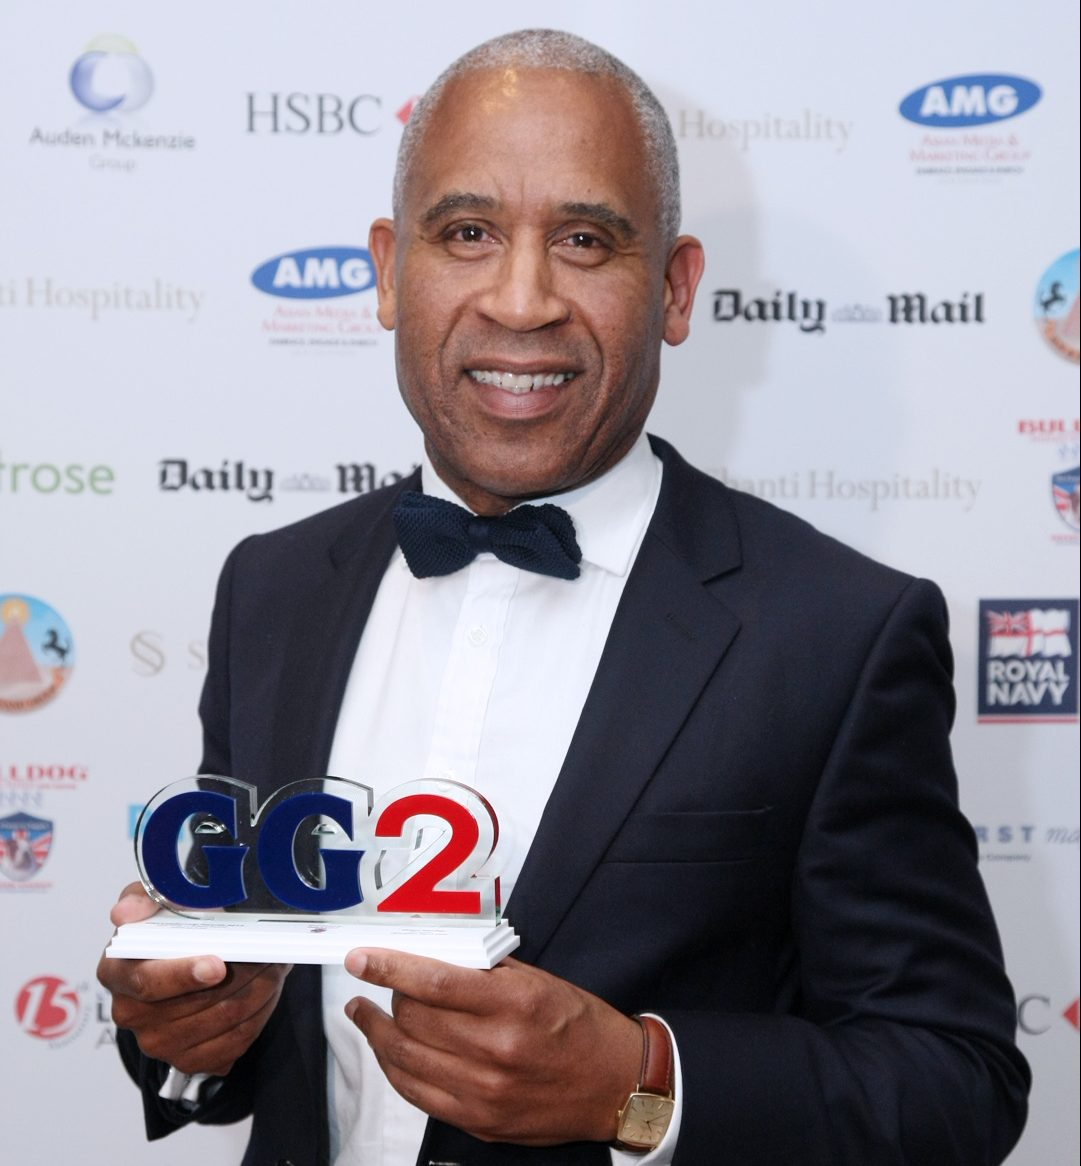 Sir Simon Woolley was awarded the Pride of Britain Award at the GG2 Leadership and Diversity Awards in 2013.